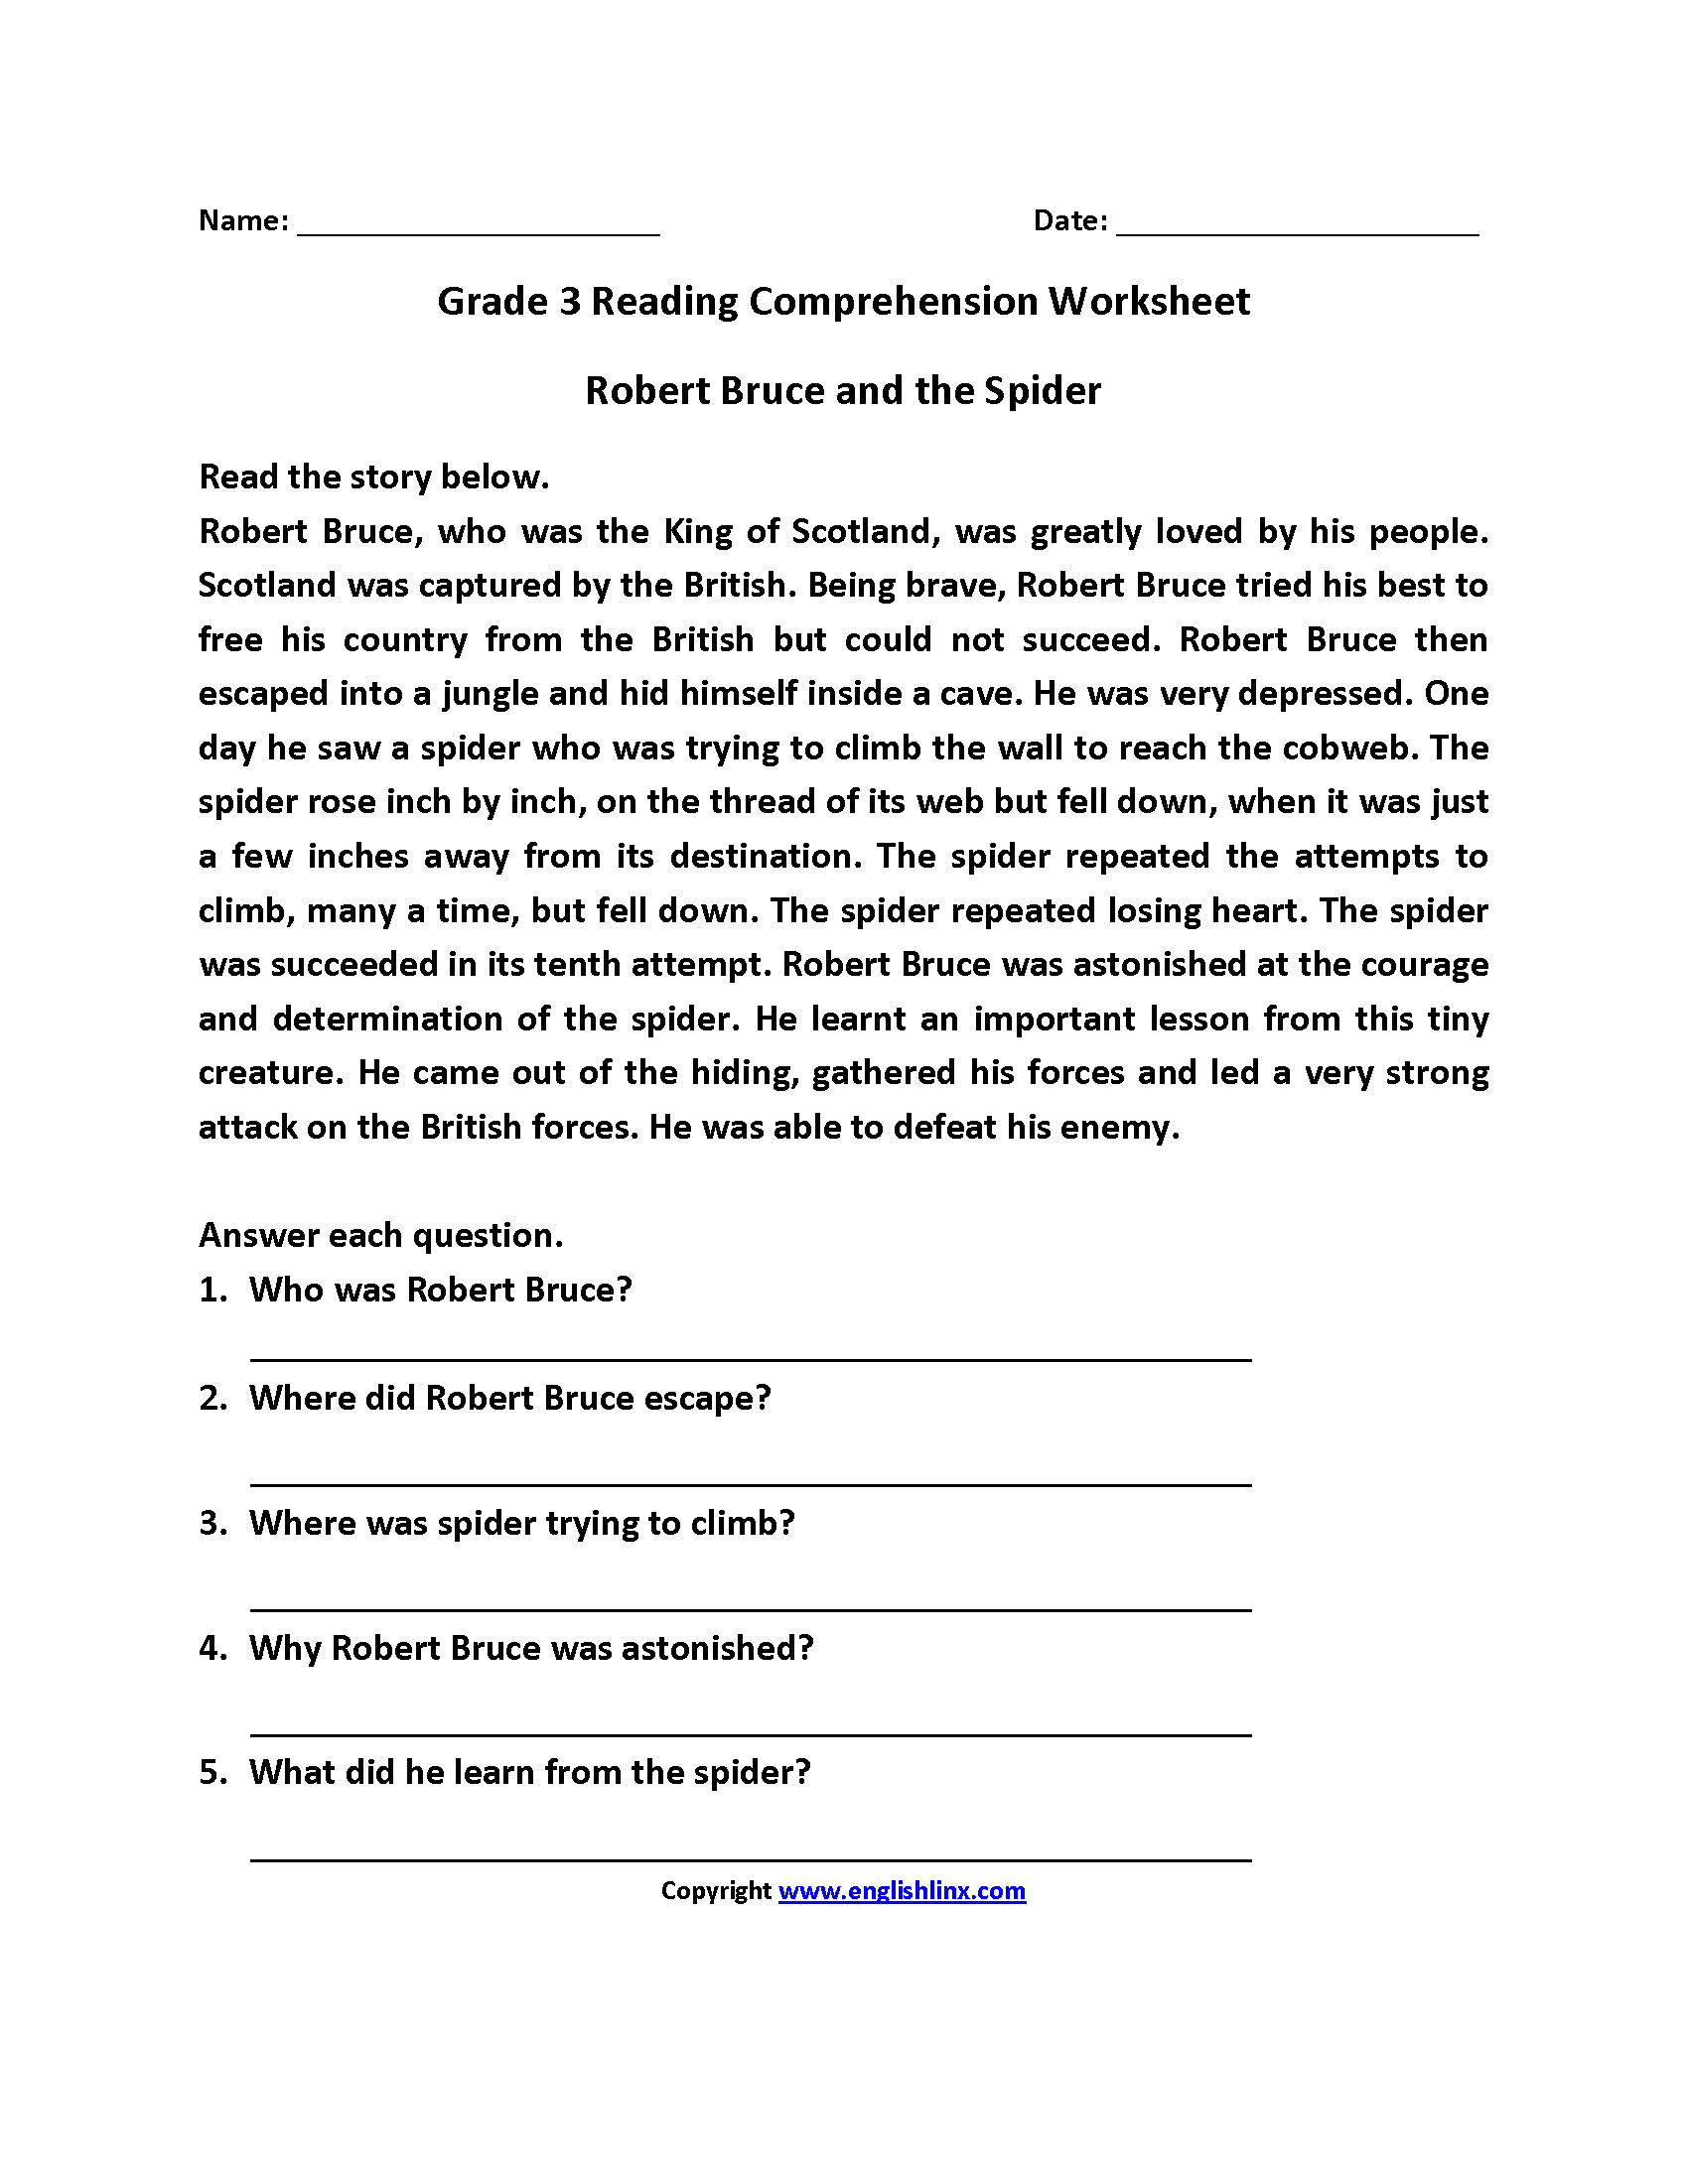 Robert Bruce And Spider Third Grade Reading Worksheets